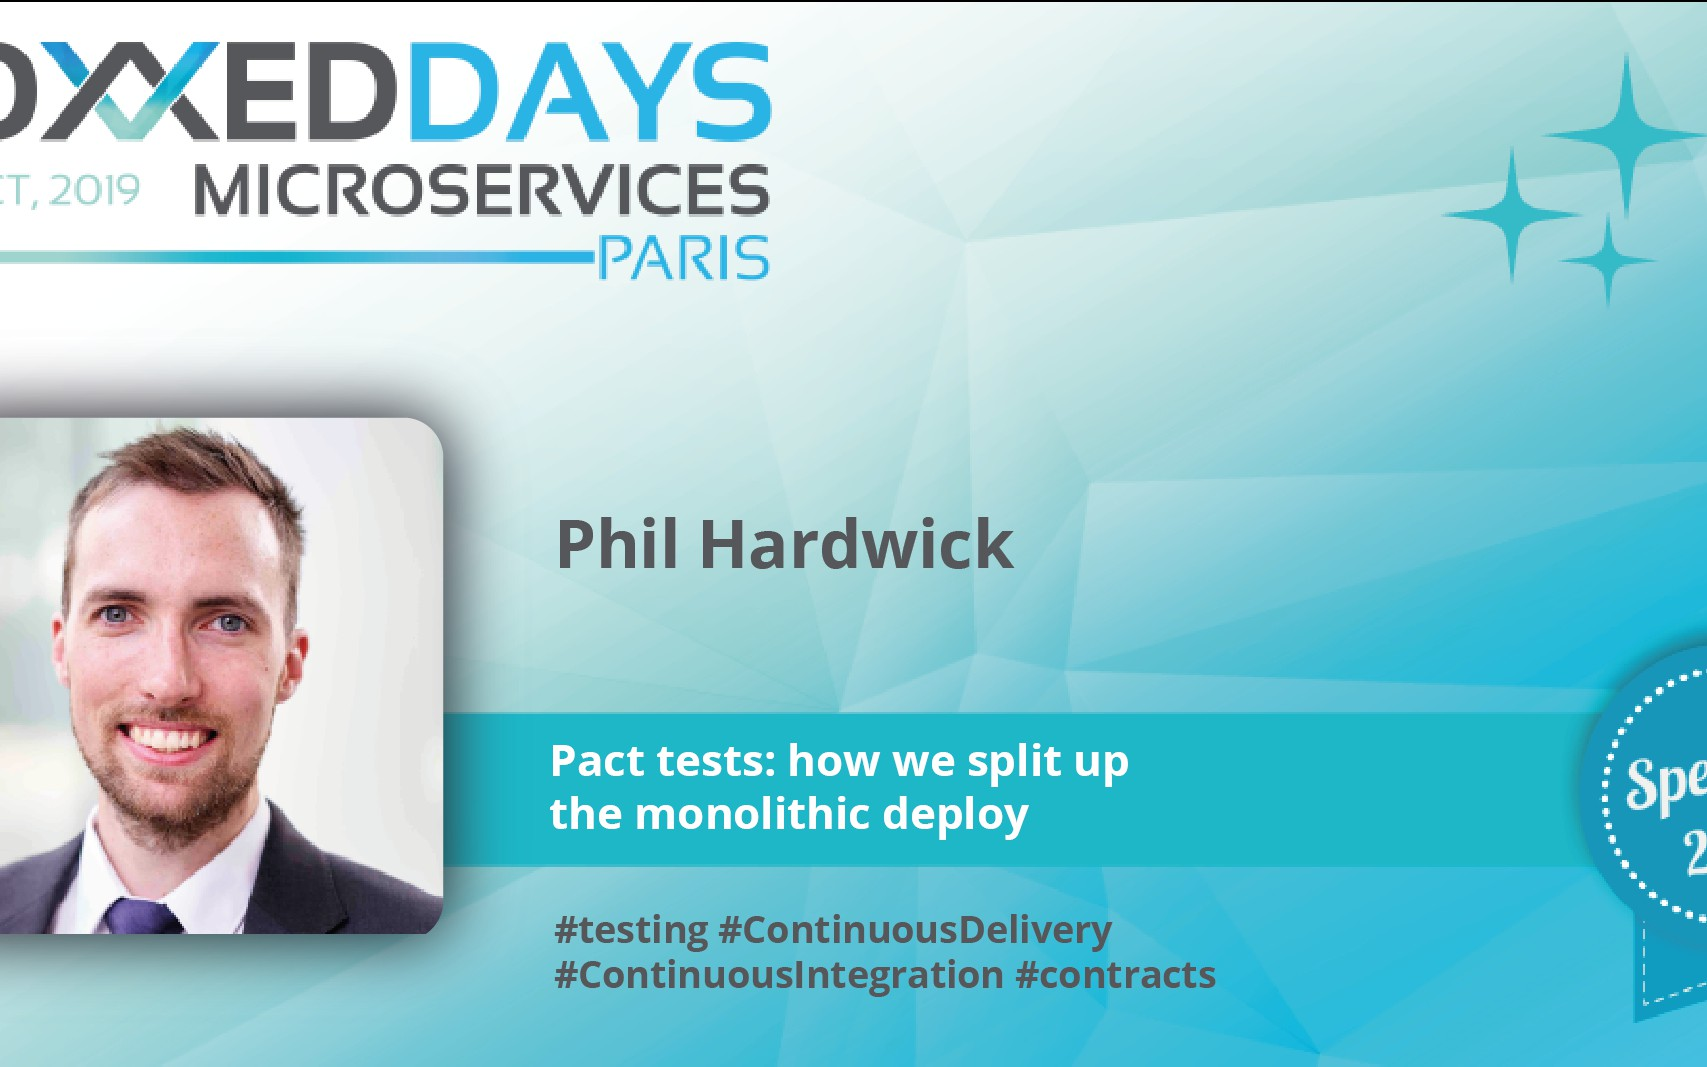 Event-Driven Orchestration: Effective Microservices